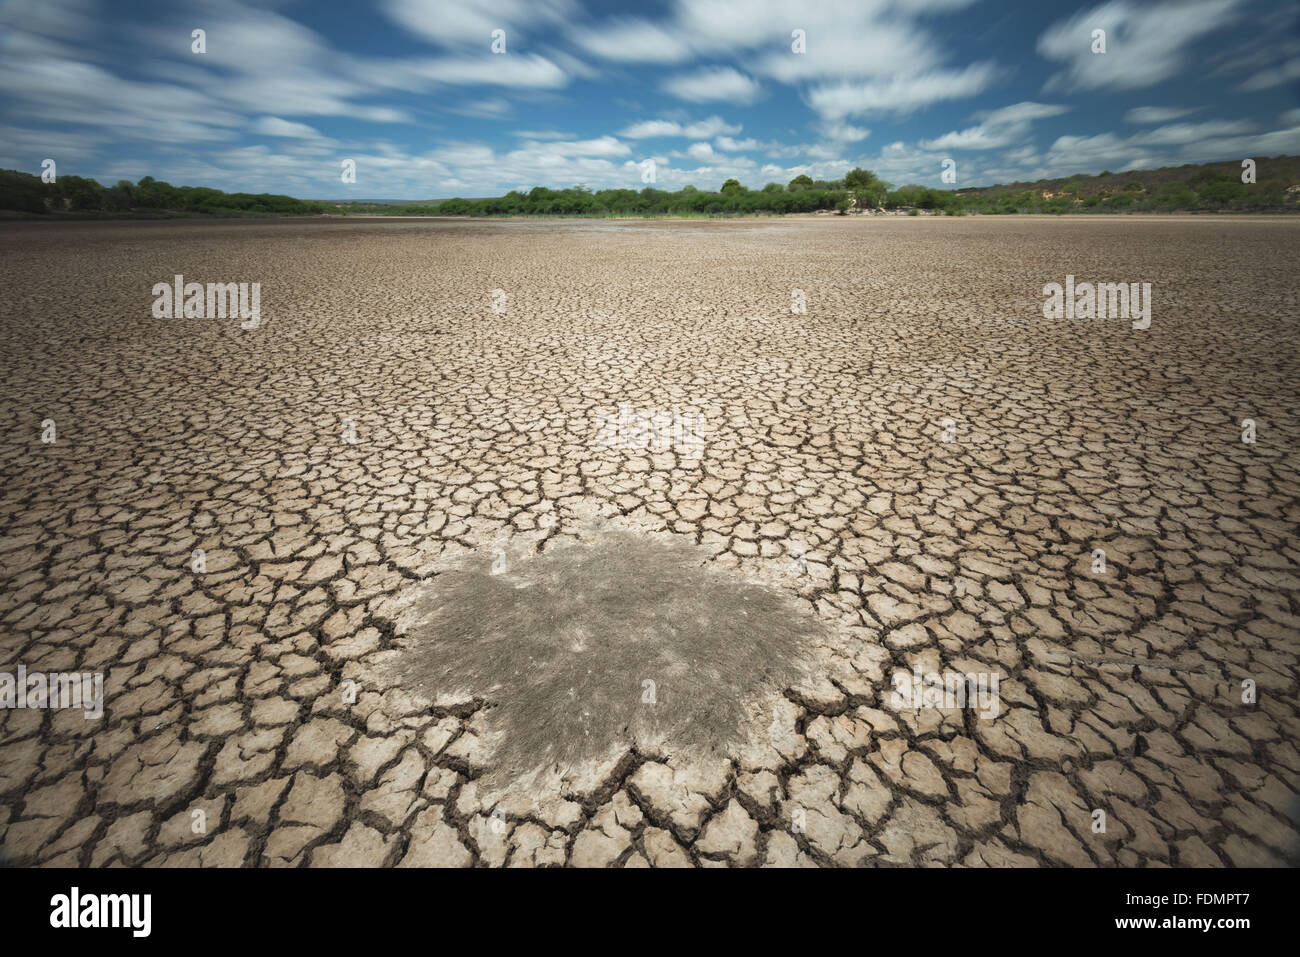 Pond Puiu in drought period - National Park Catimbau - Stock Image